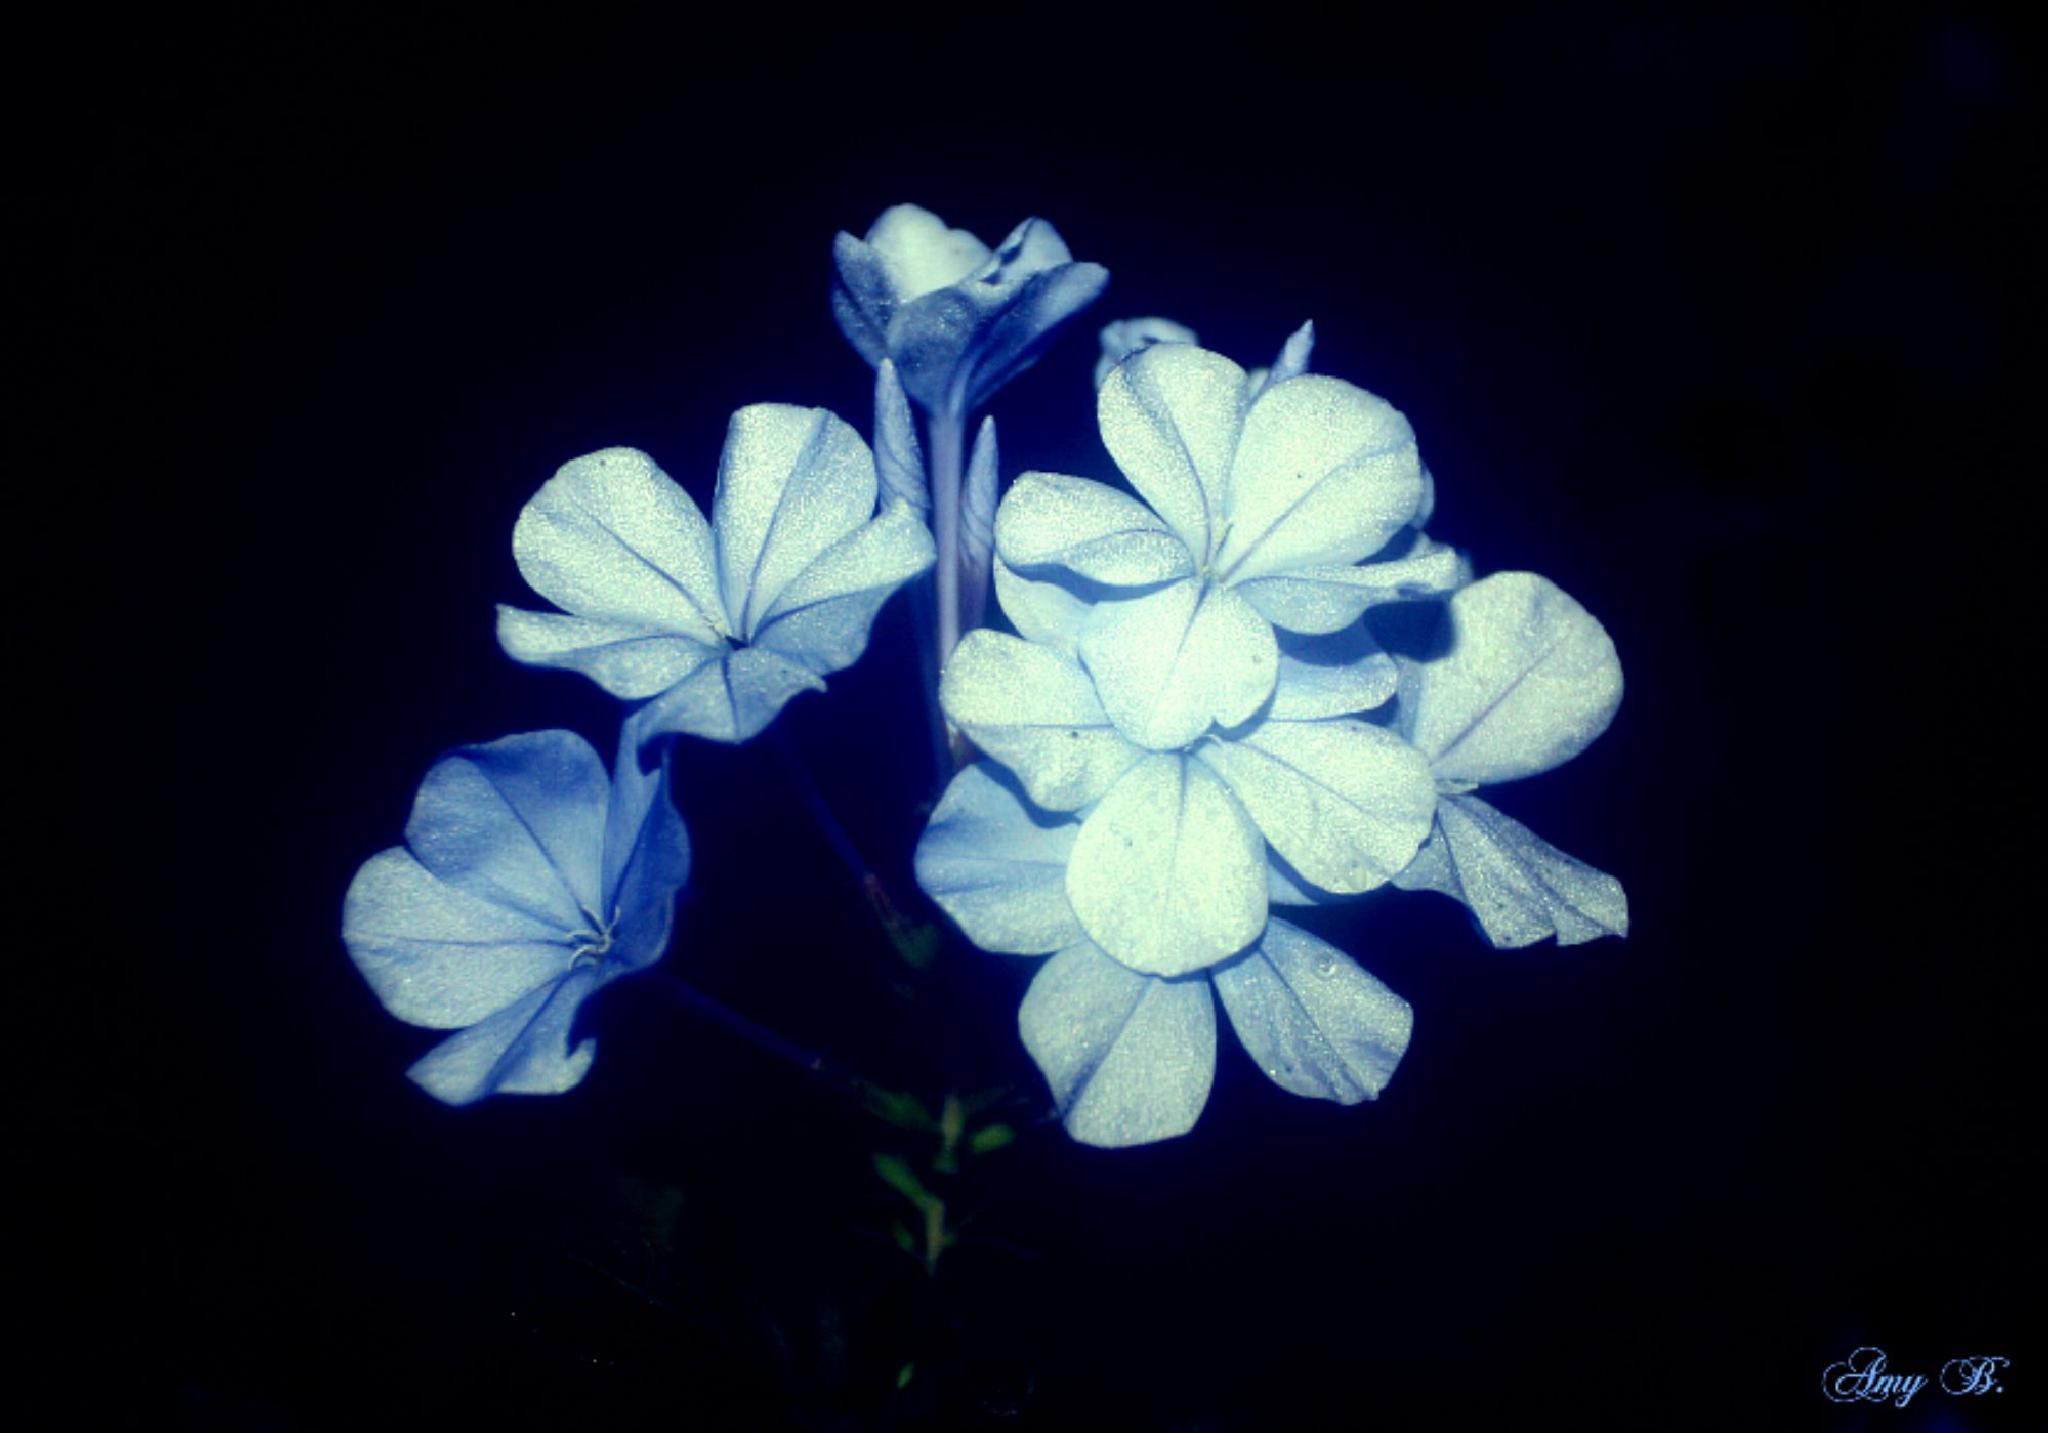 Lots of little blue flowers at night by amy.conger.9